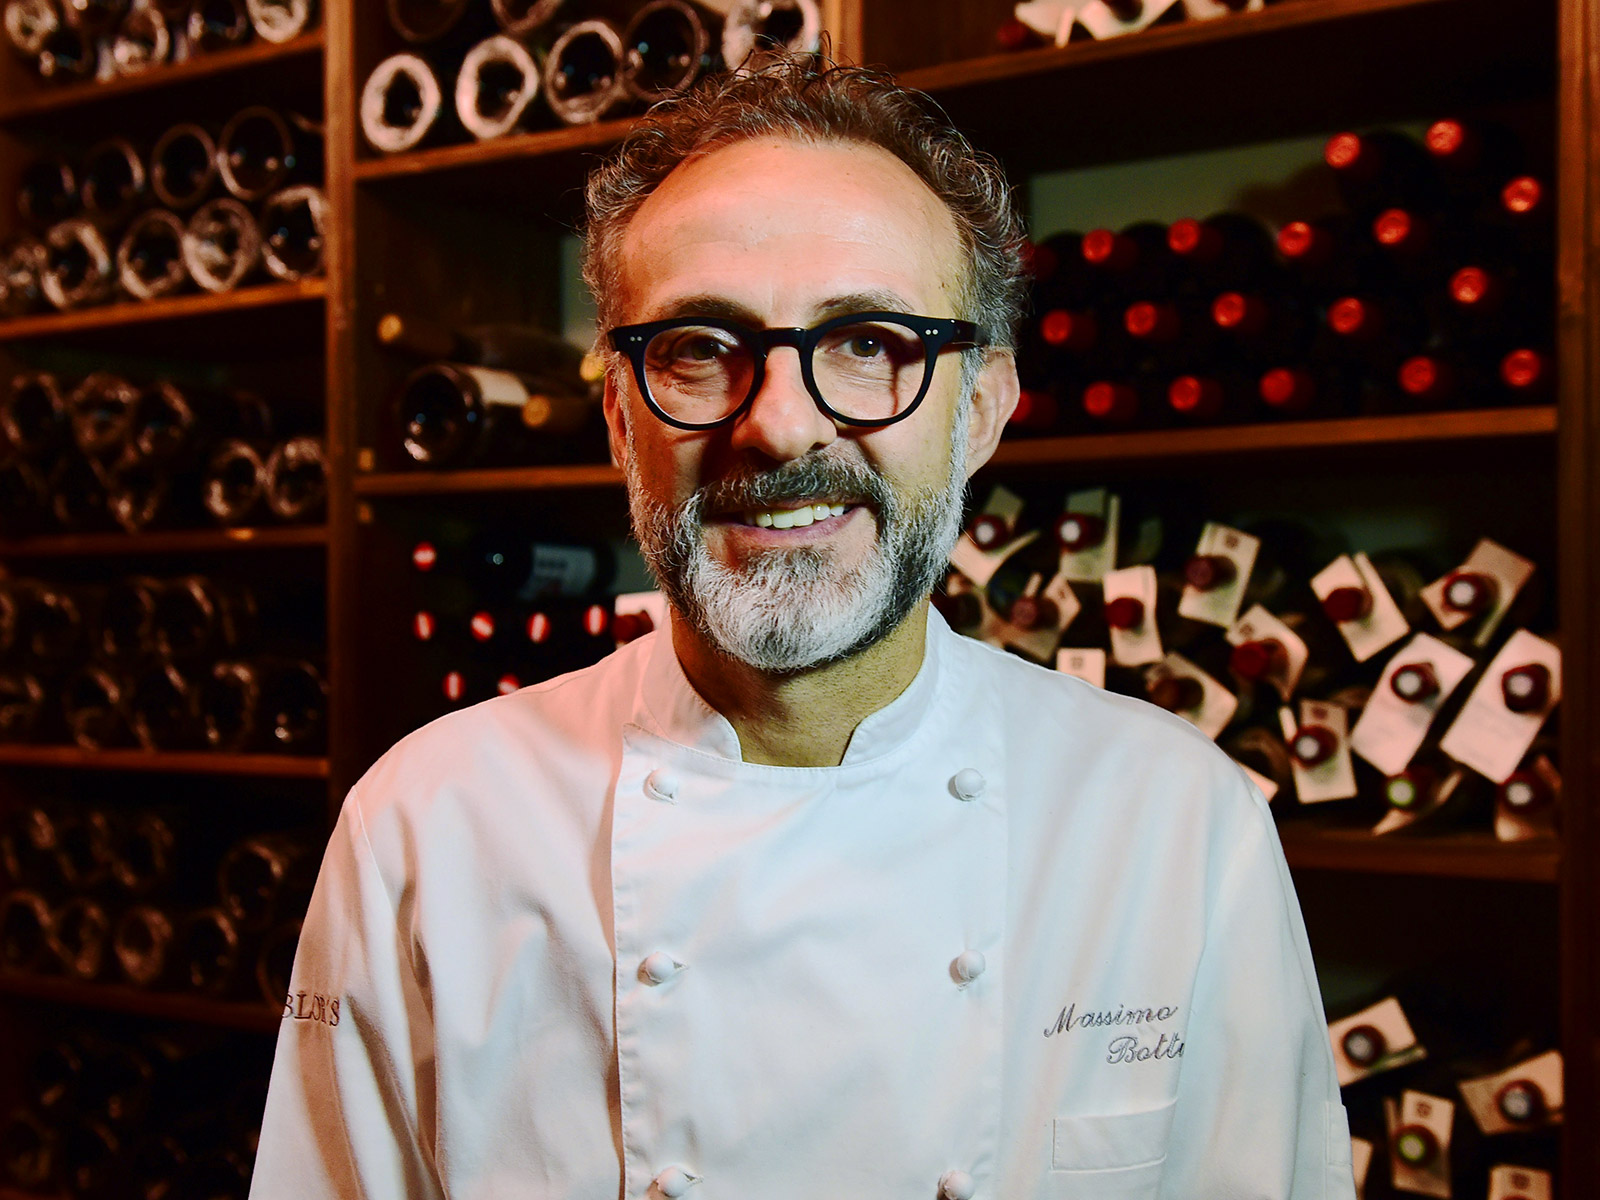 Massimo Bottura's Latest Restaurant Is as Gucci as It Gets